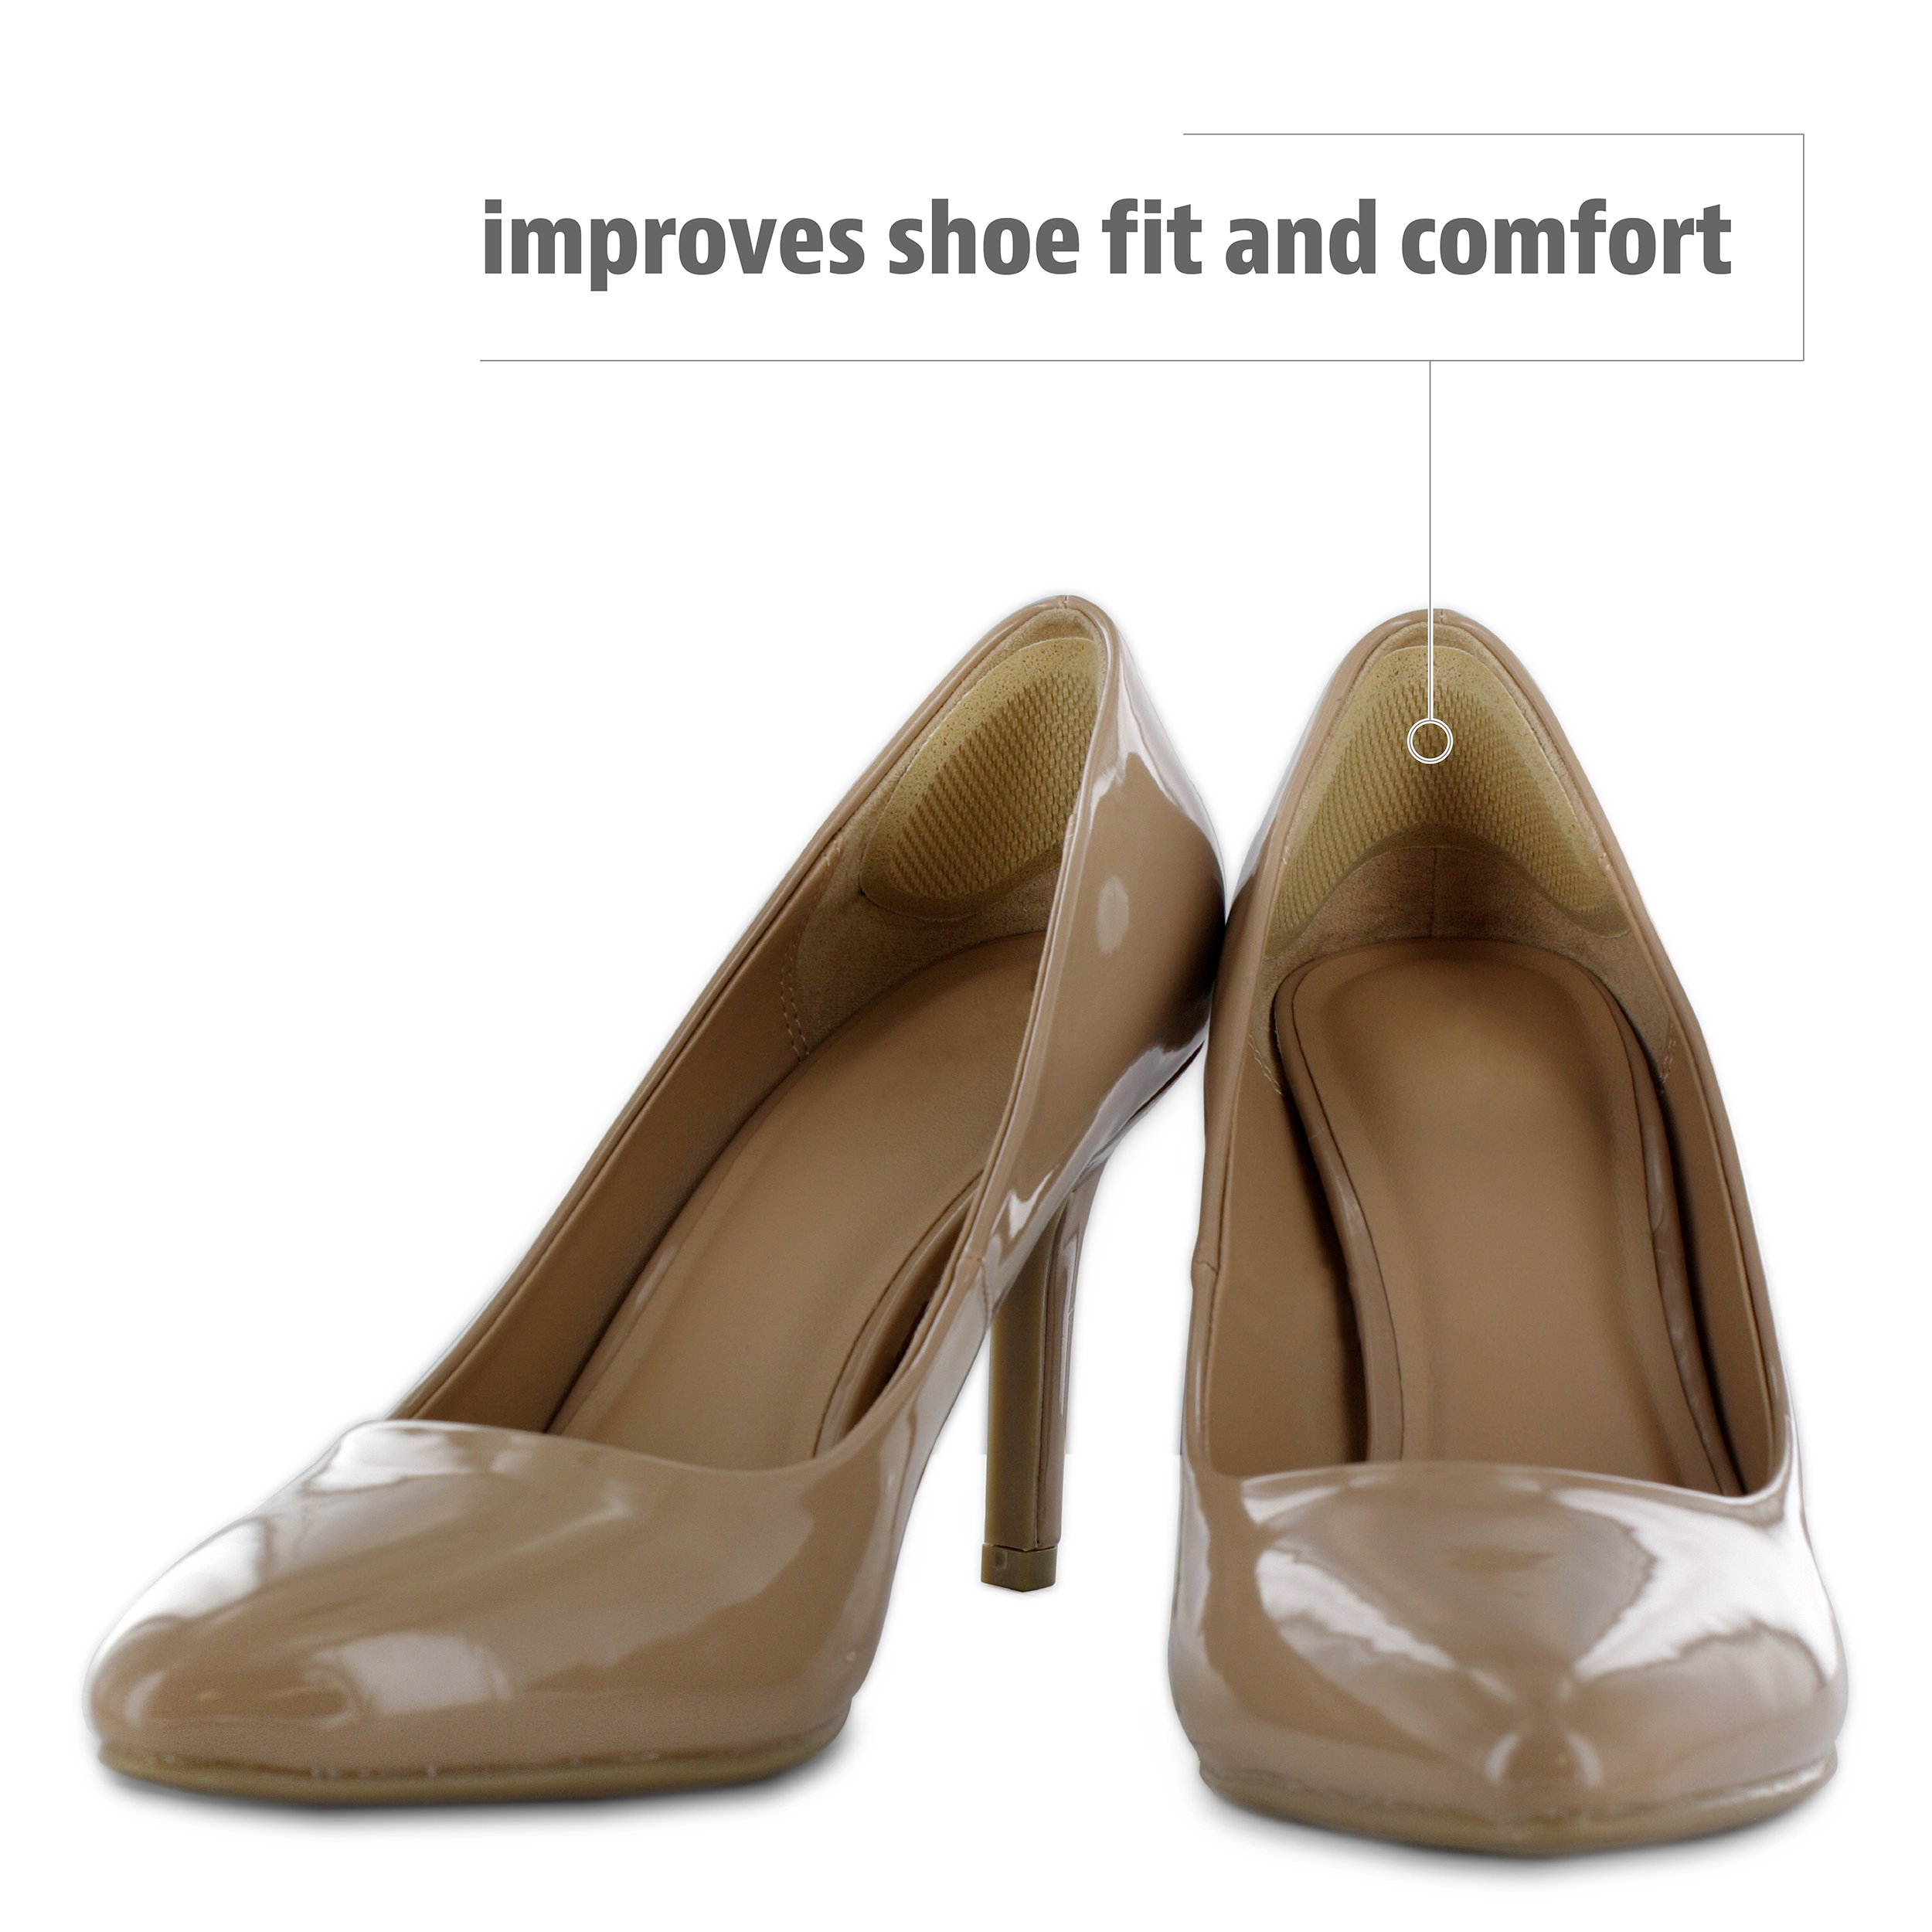 Sof Sole Heel Liner Cushions for Improved Shoe Fit and Comfort, 2 Pair by Sof Sole (Image #3)